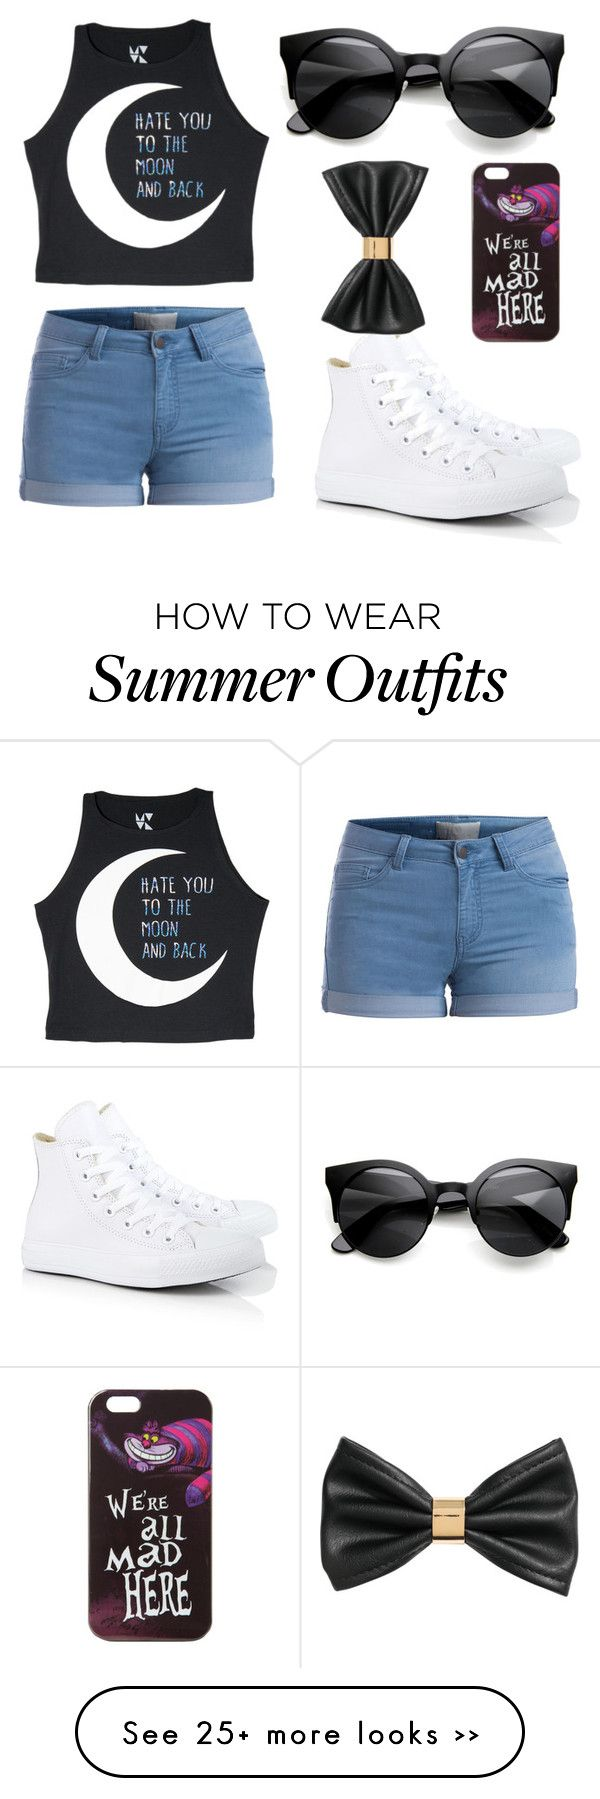 """Summer outfit"" by itsmadimckenna on Polyvore"